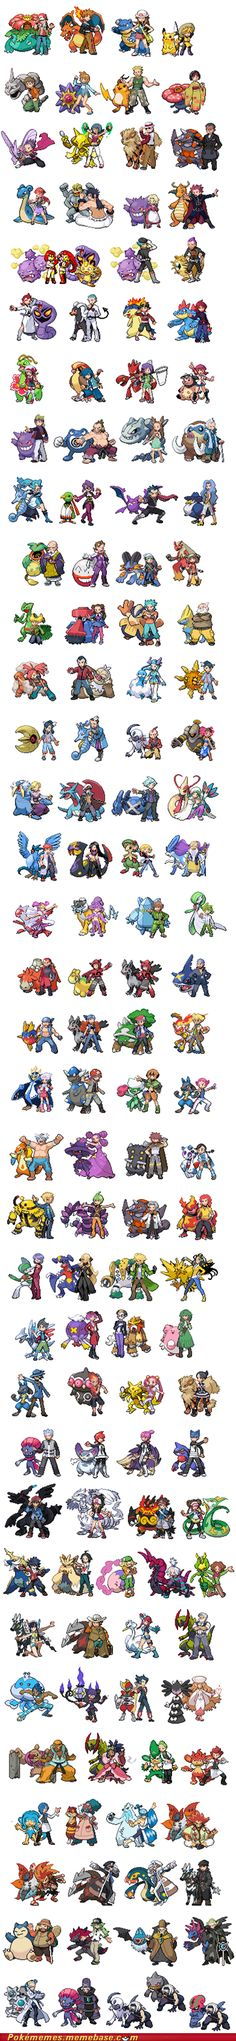 138 Trainers